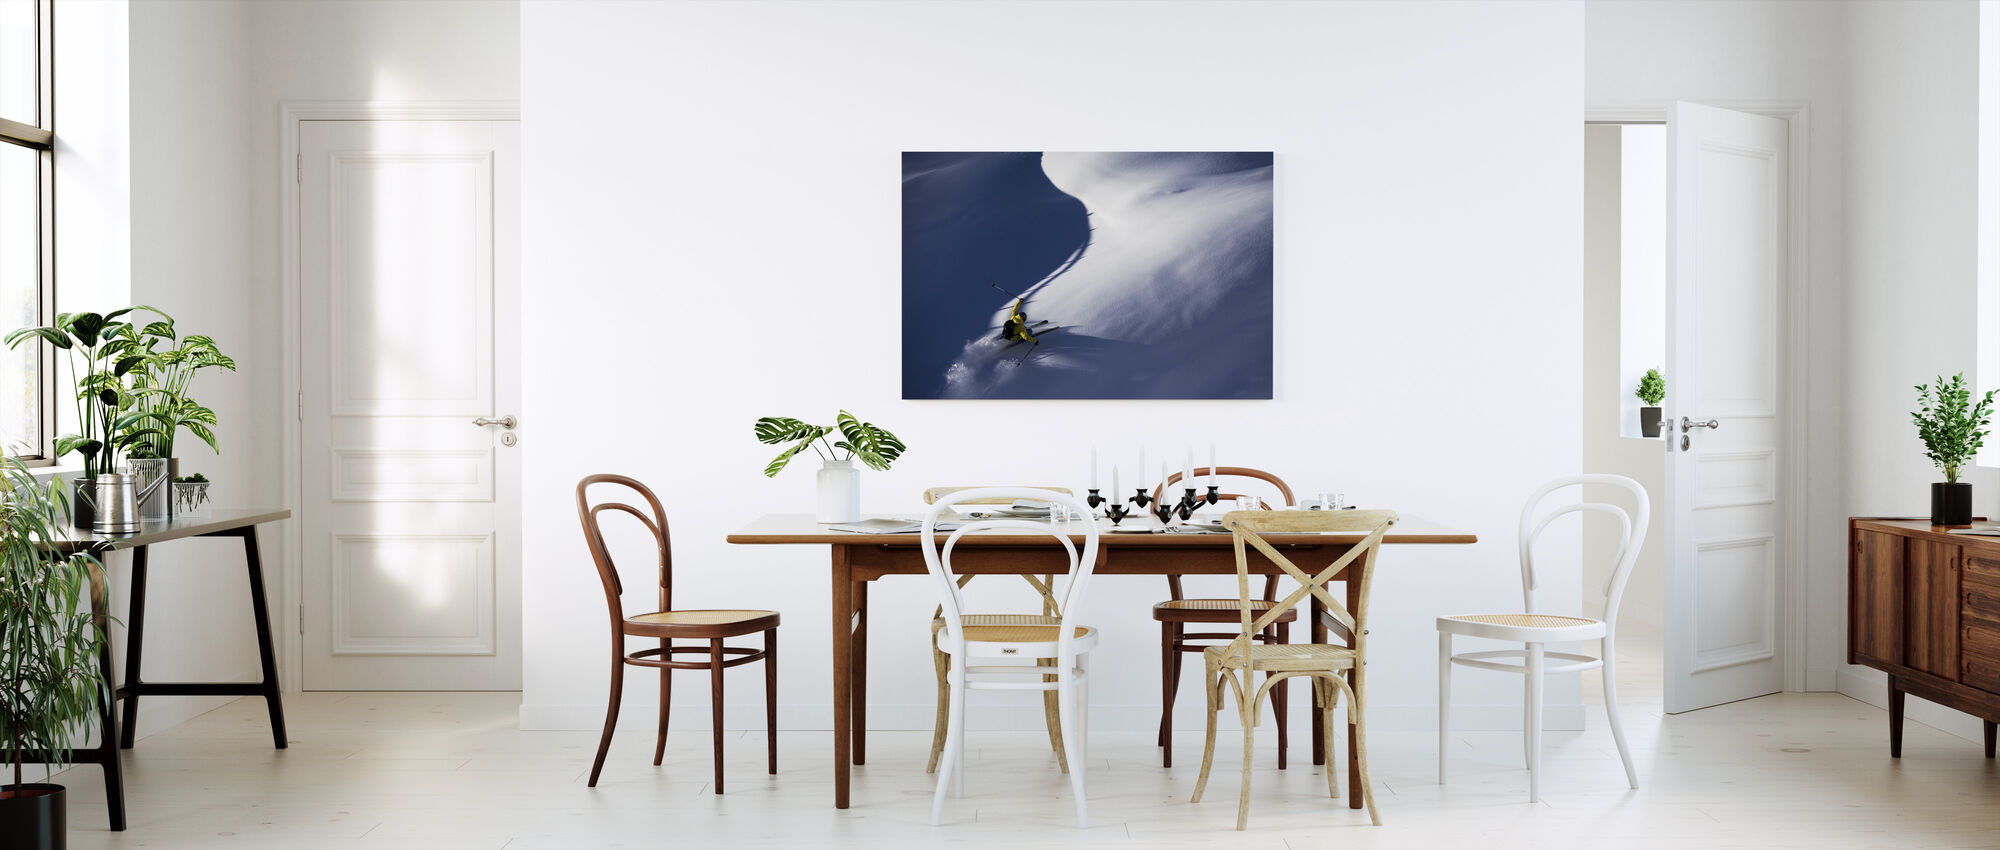 Powder Snow Skiing - Canvas print - Kitchen